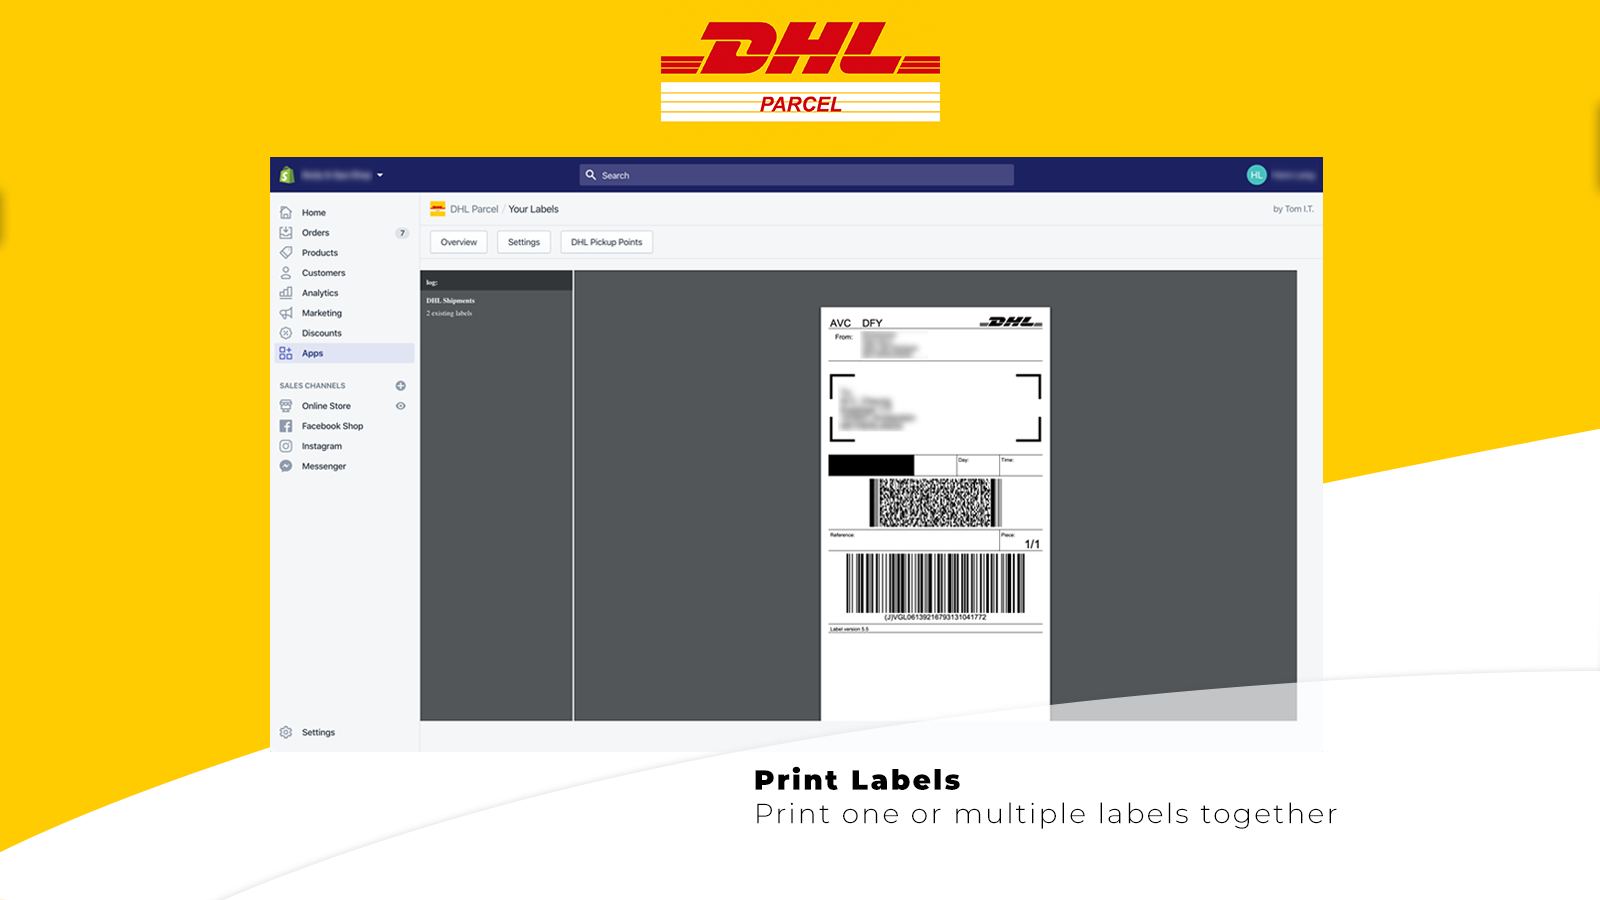 Create one or multiple labels together